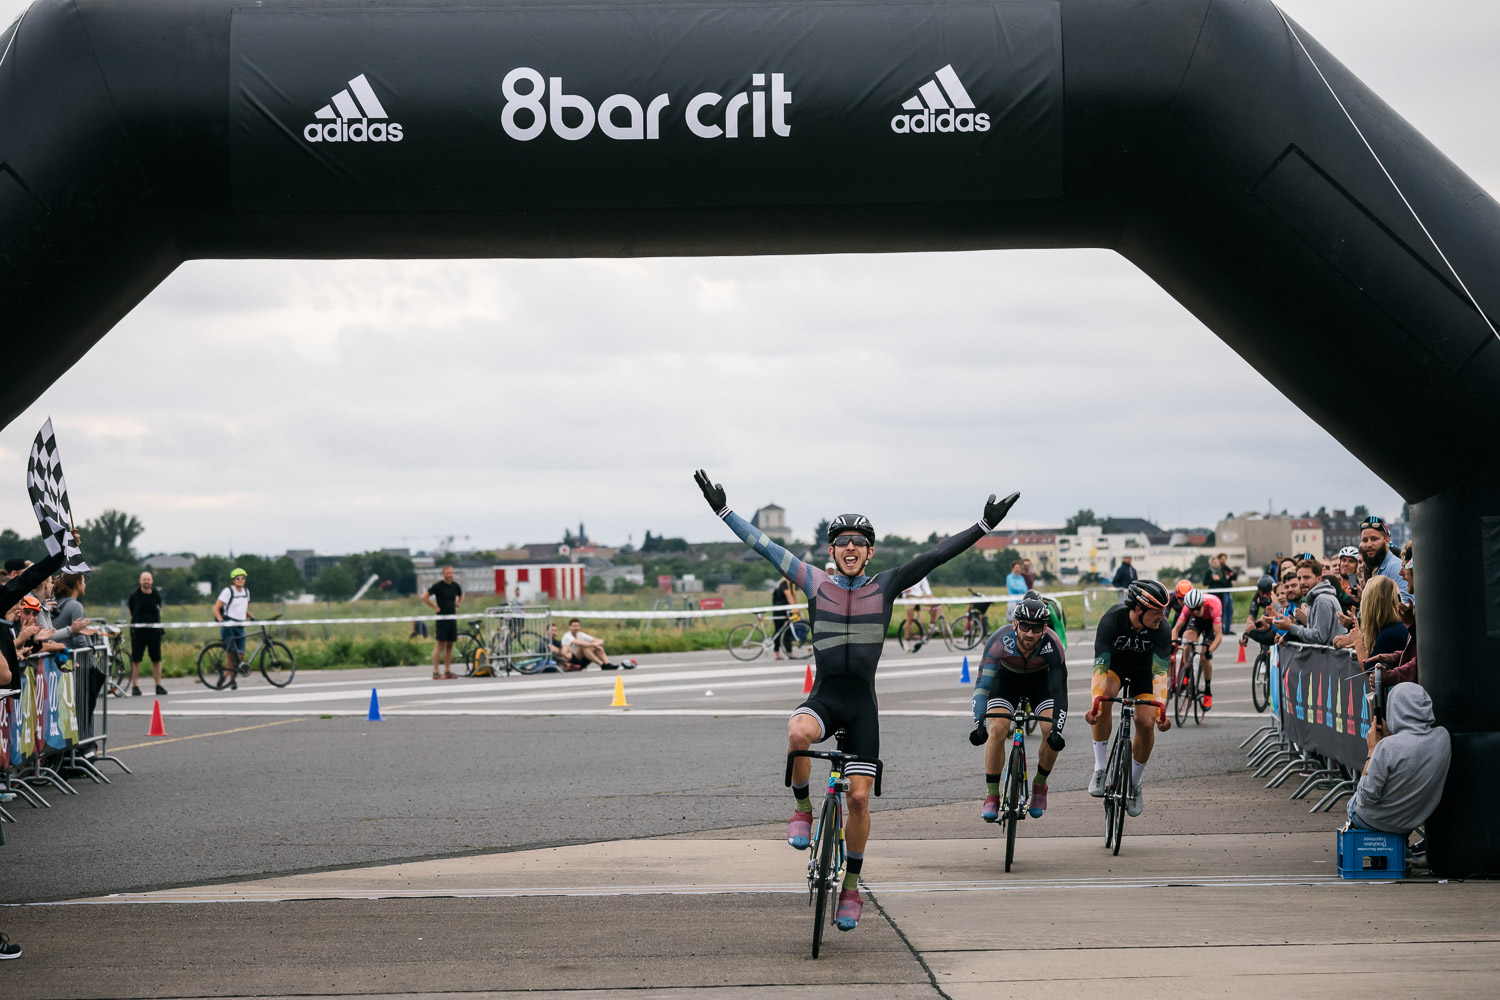 8bar-crit-fixed-gear-bike-race-stefanhaehnel-men-fxd-final-47